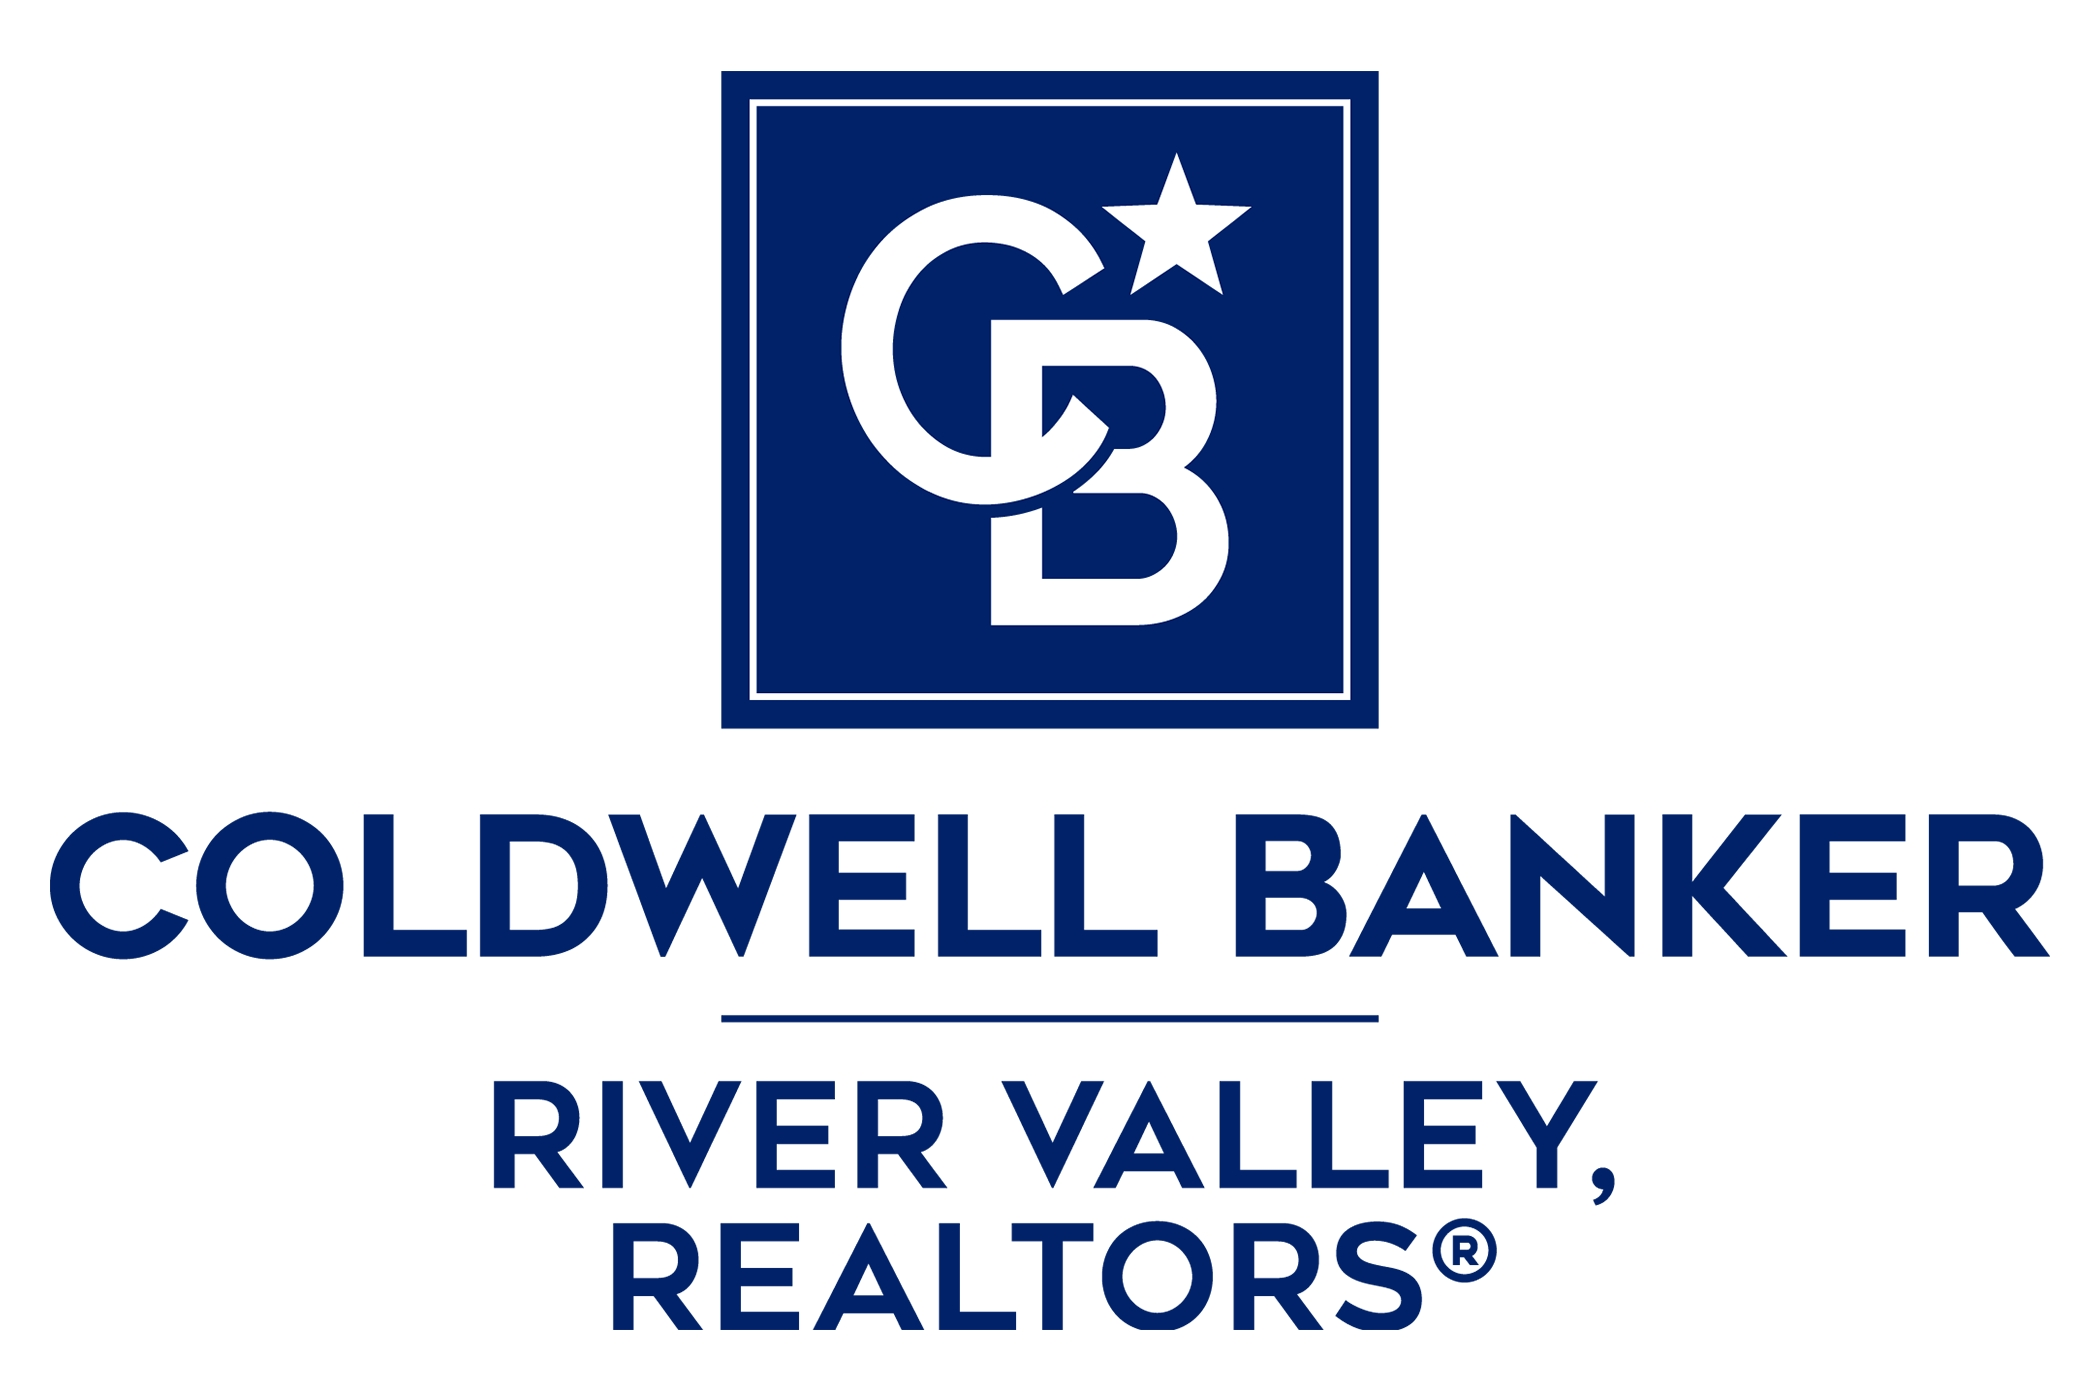 Mike Knothe - Coldwell Banker River Valley Realtors Logo